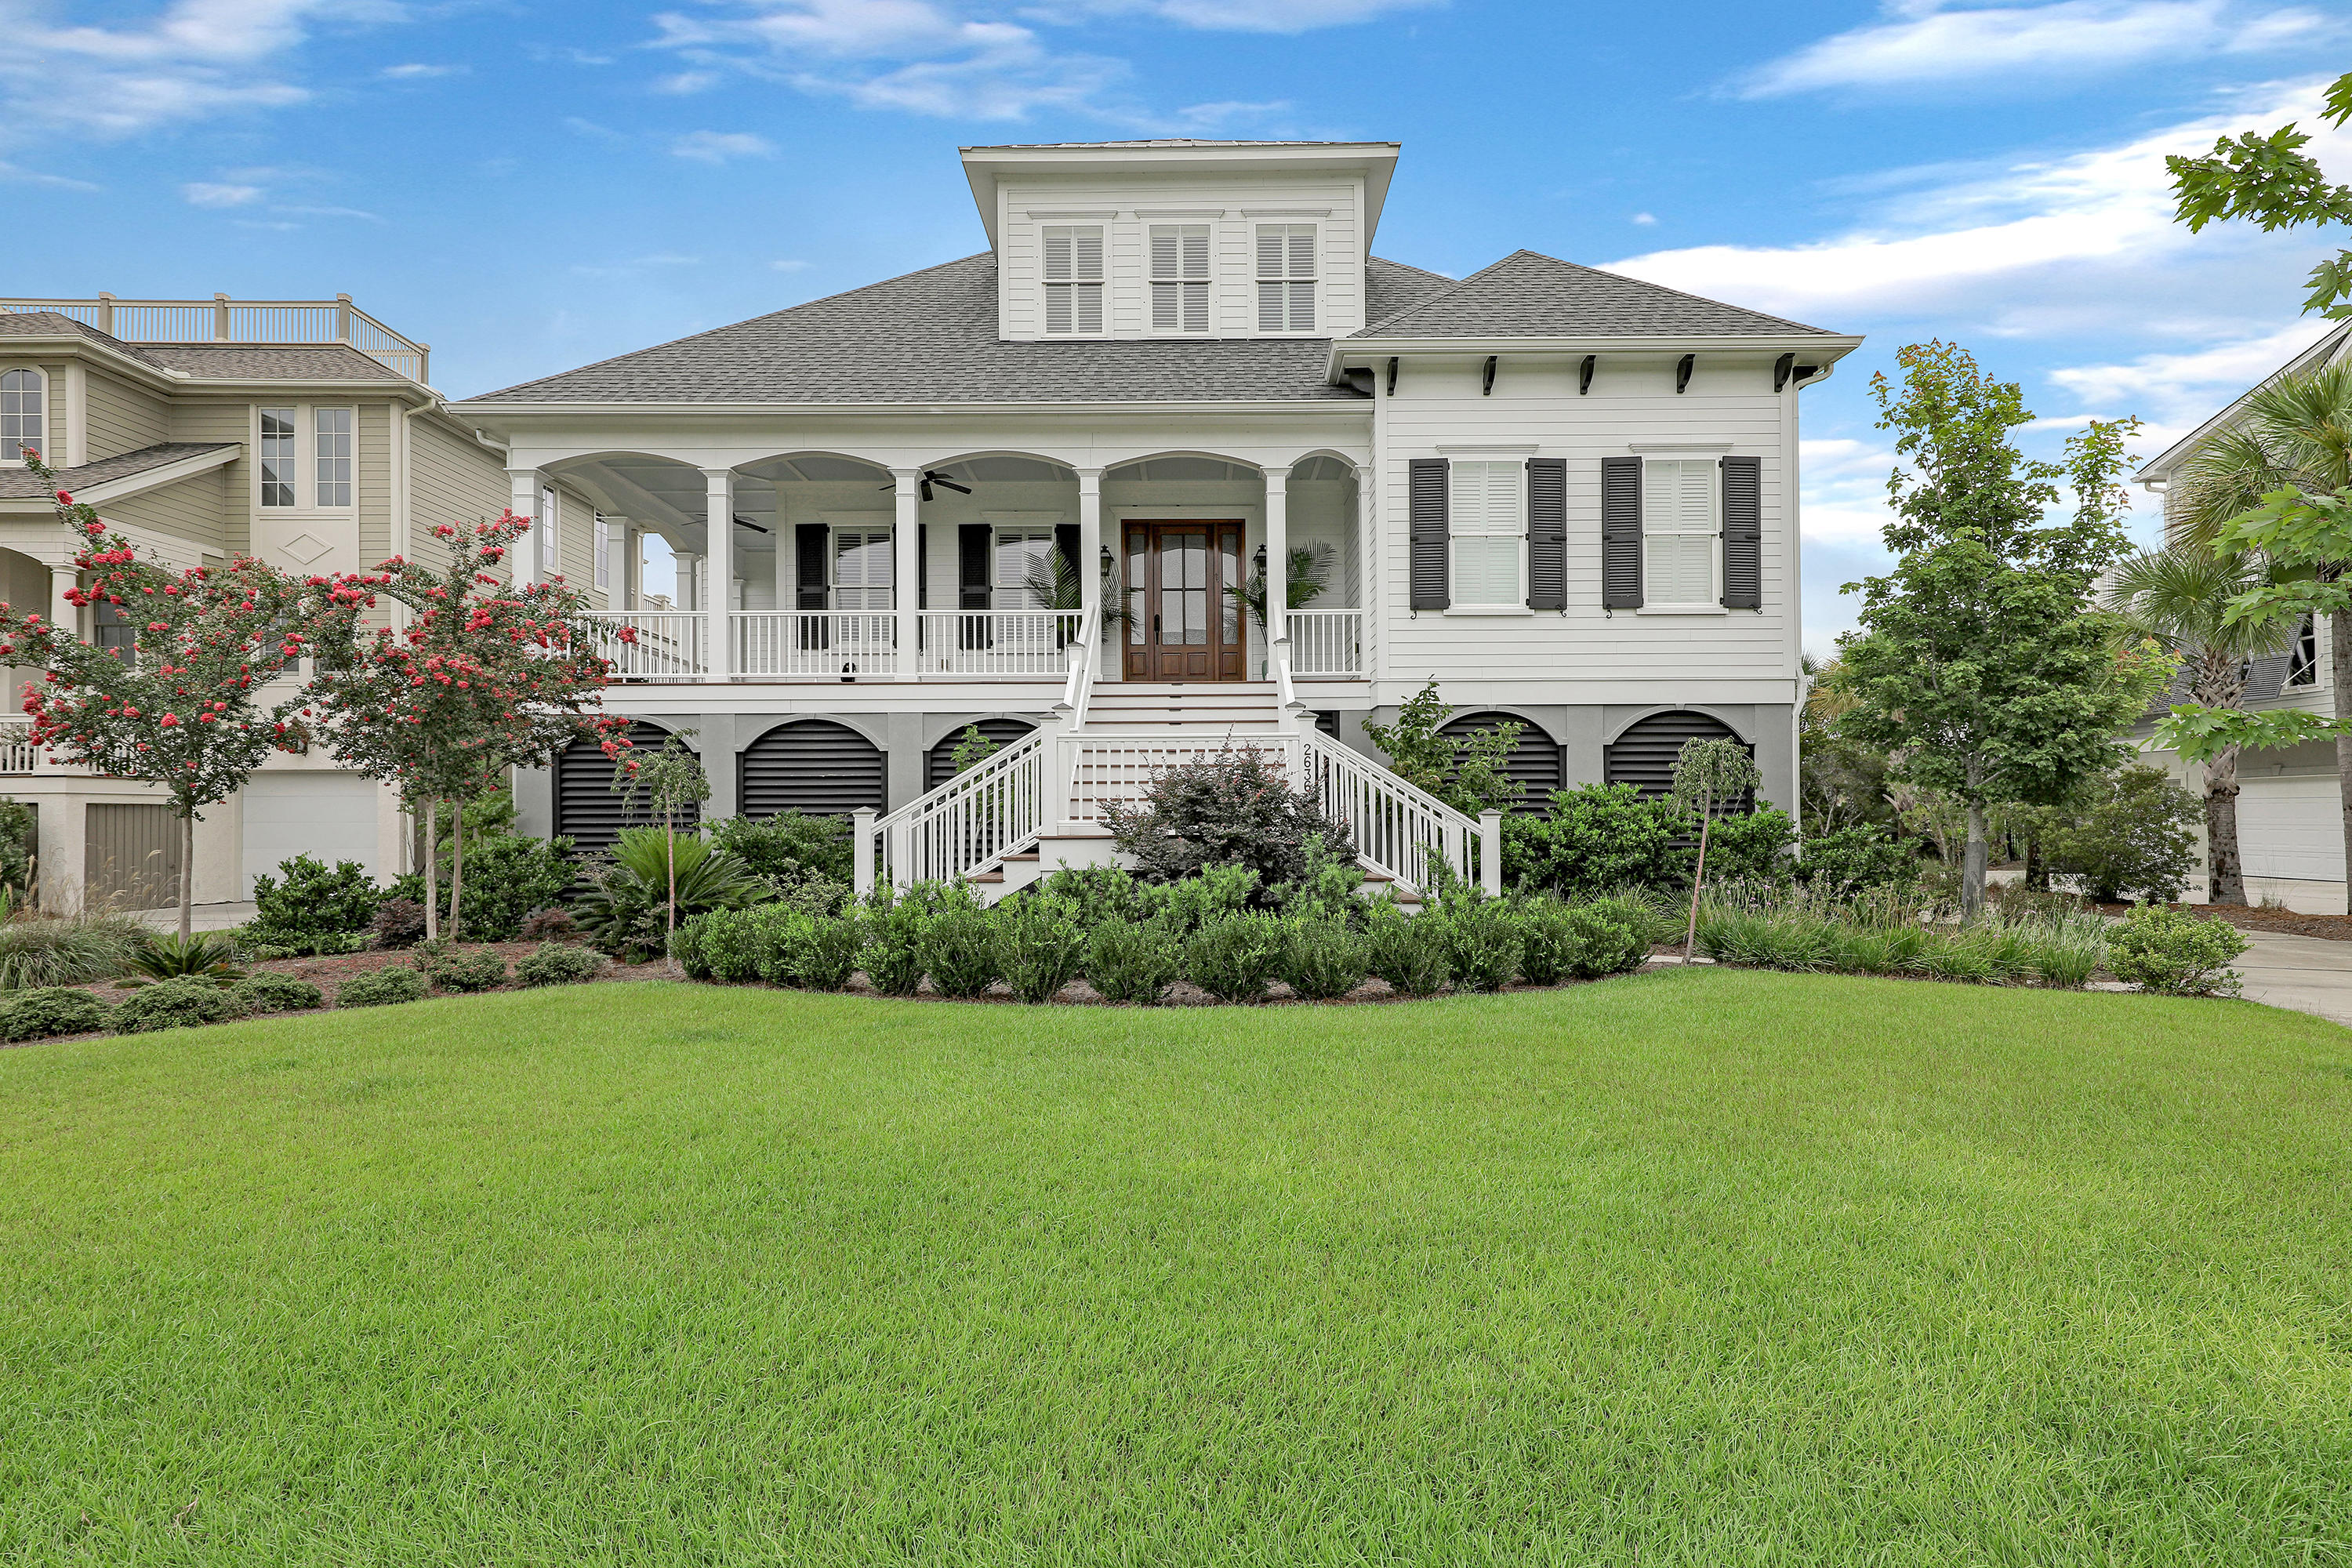 Rivertowne Country Club Homes For Sale - 2636 Crooked Stick, Mount Pleasant, SC - 44